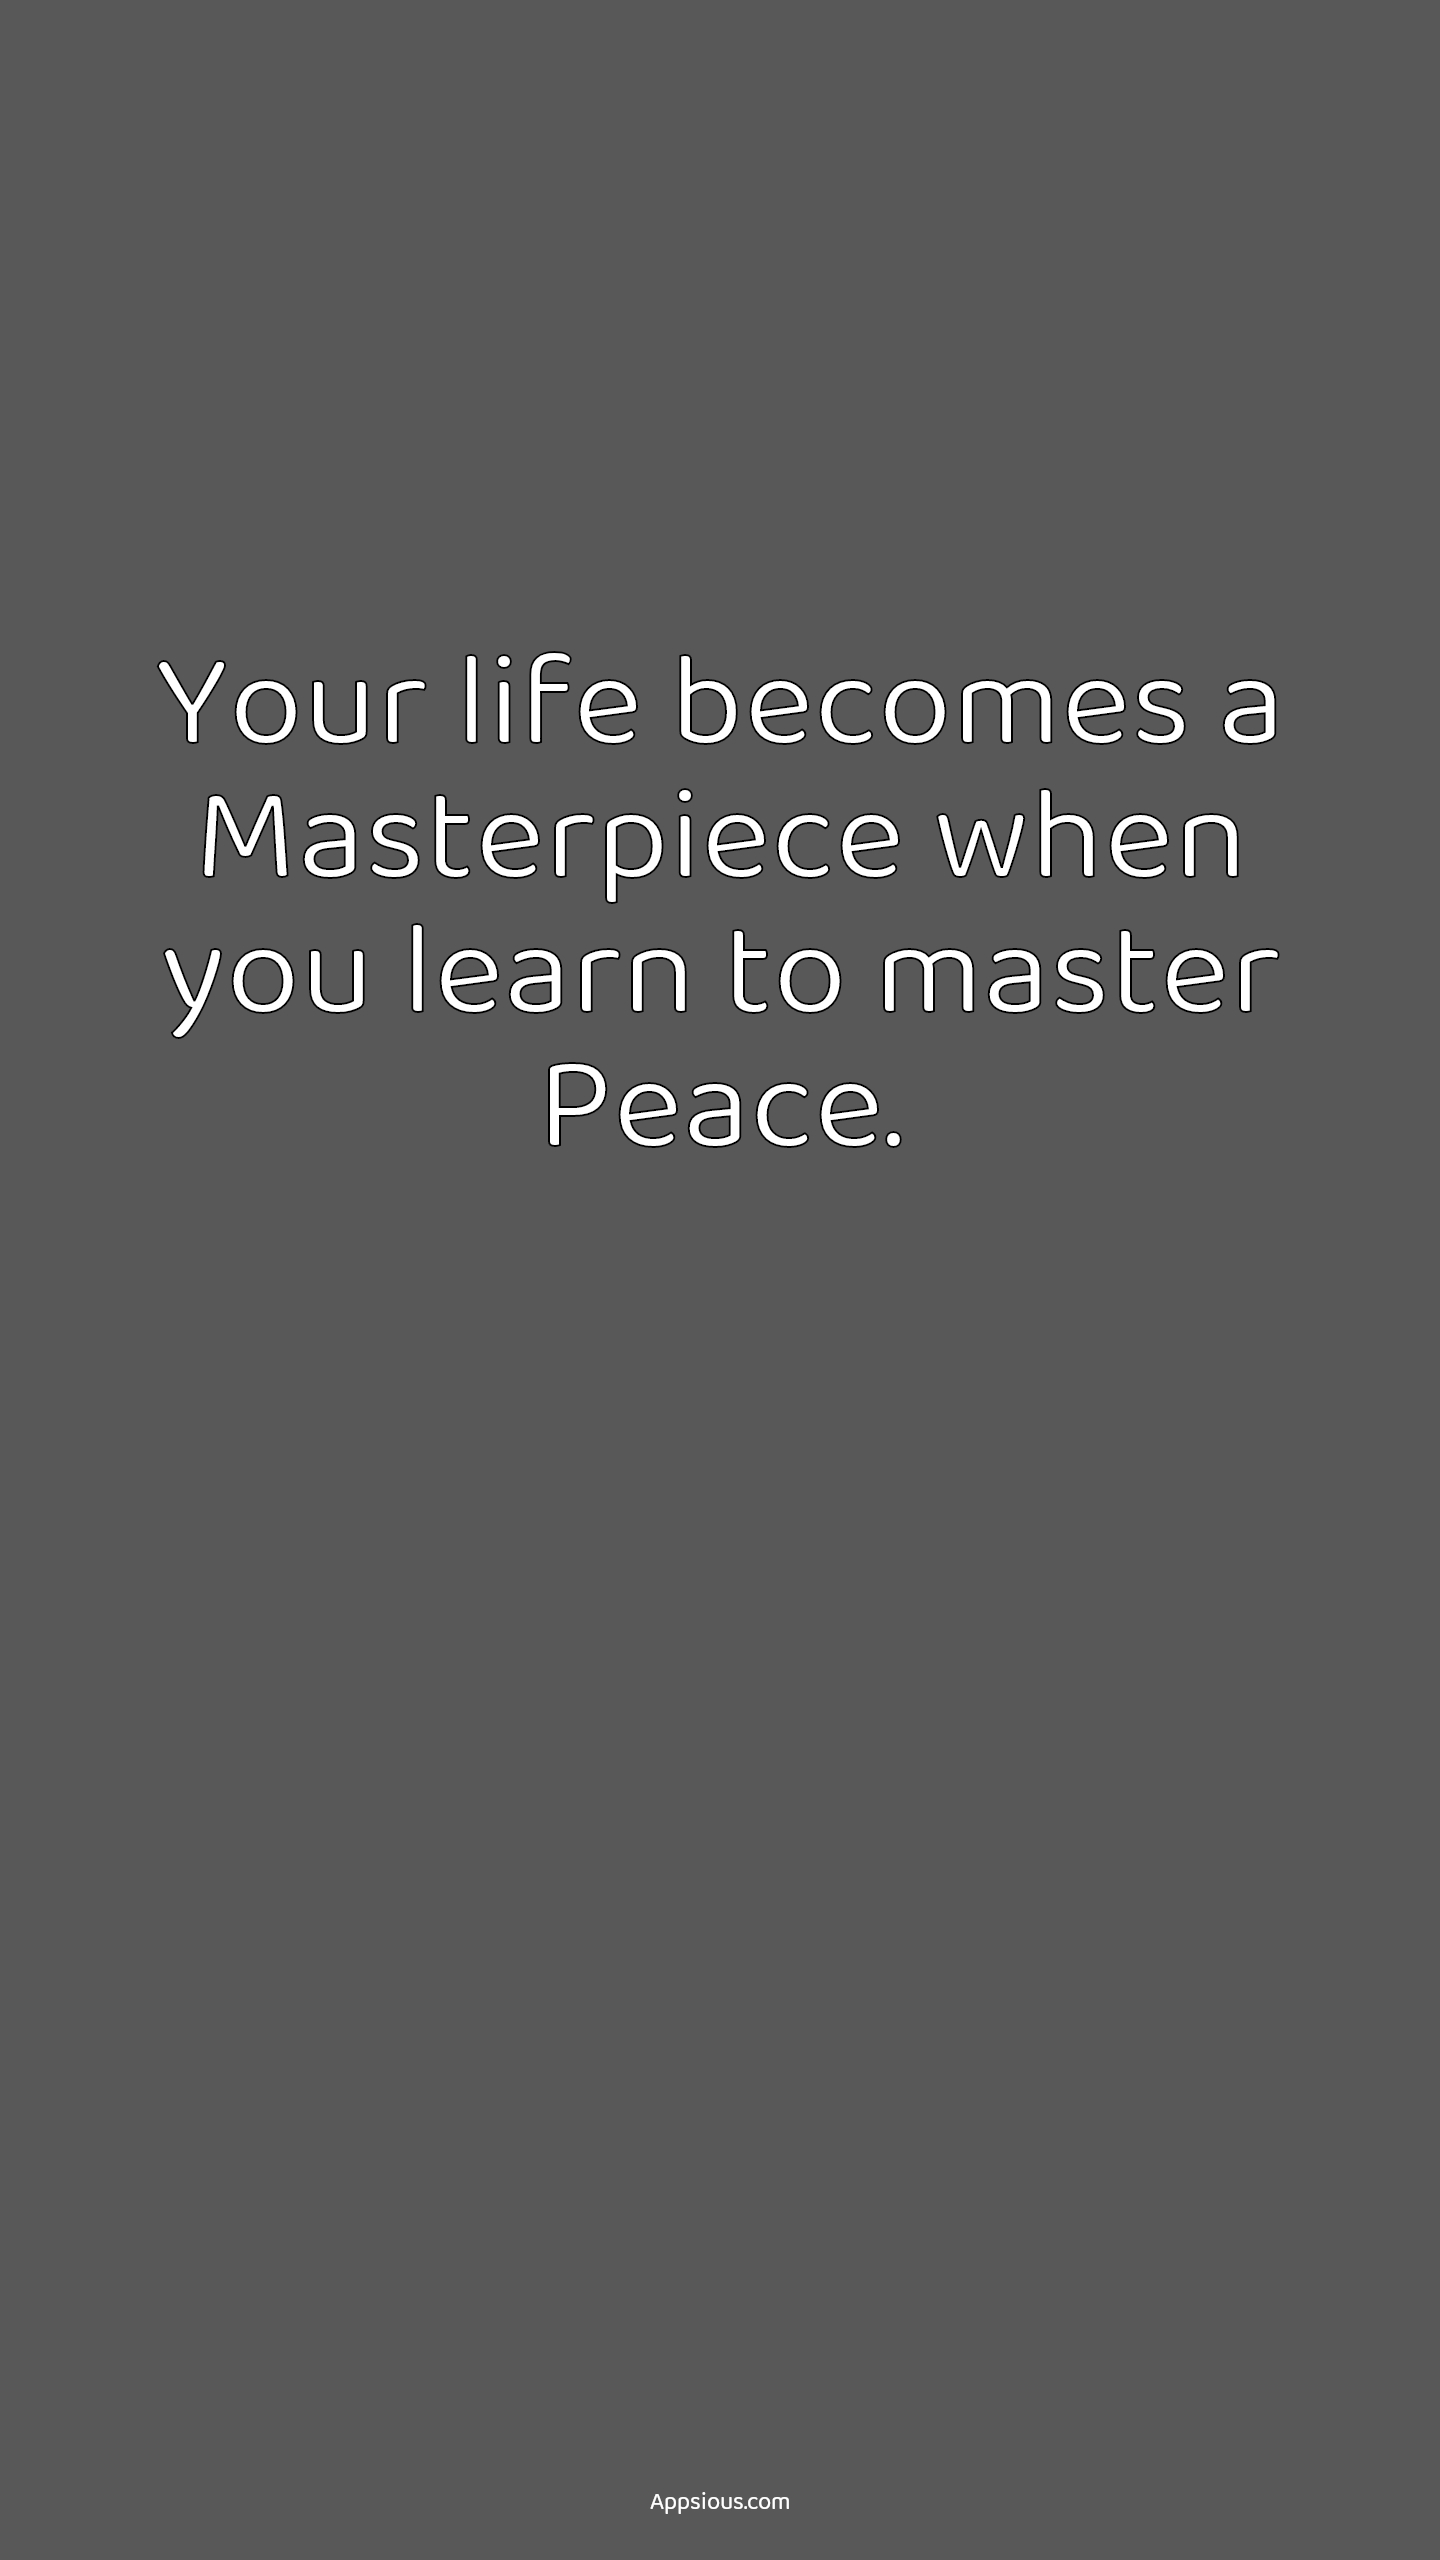 Your life becomes a Masterpiece when you learn to master Peace.